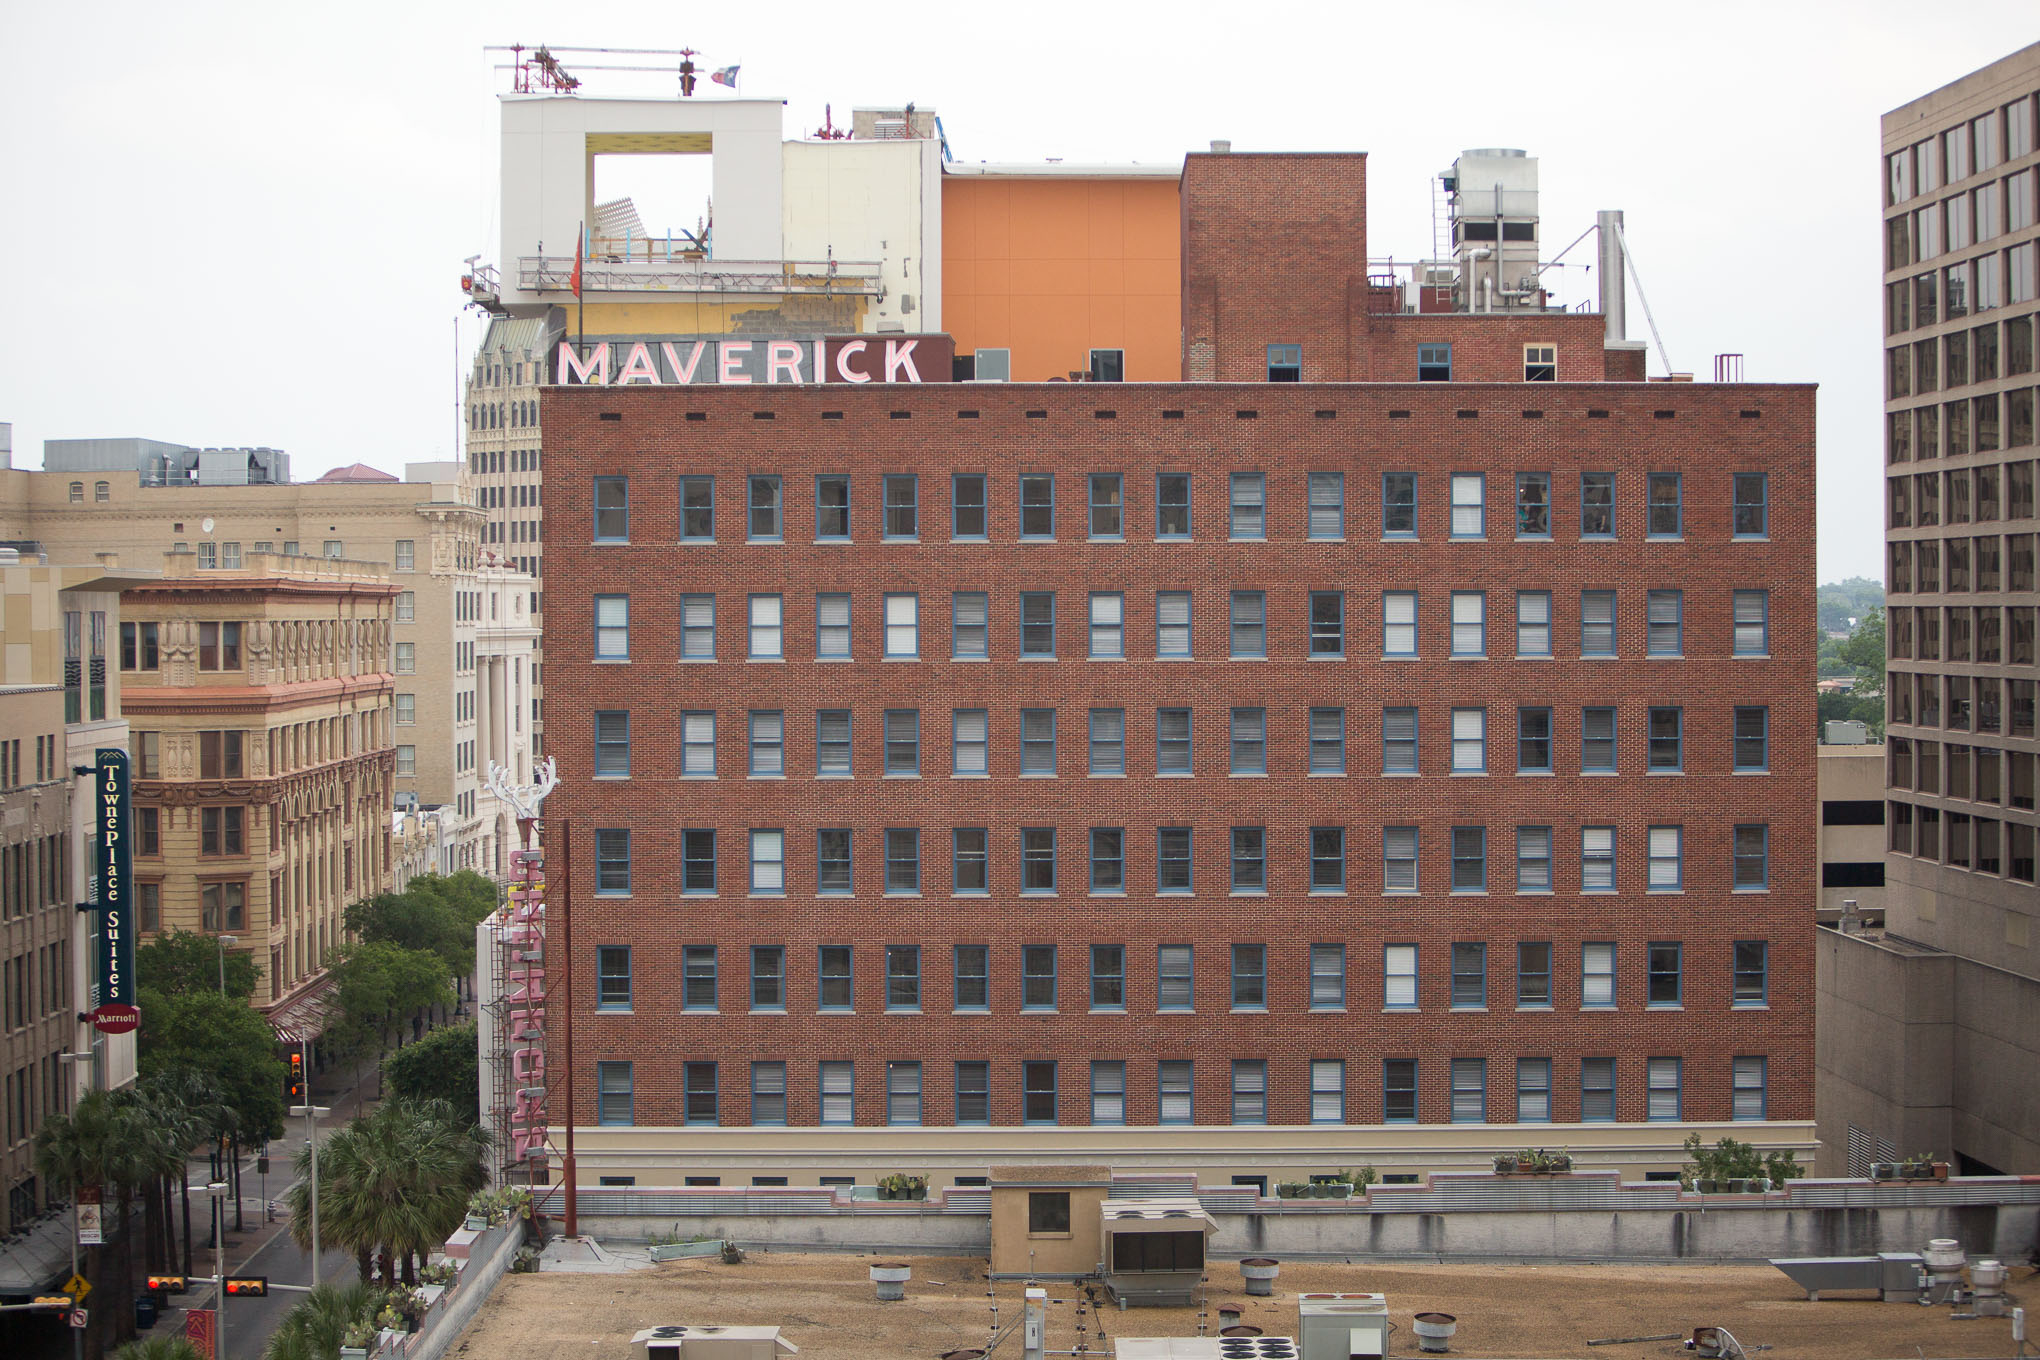 HDRC approves solar panel installation atop the Maverick Building